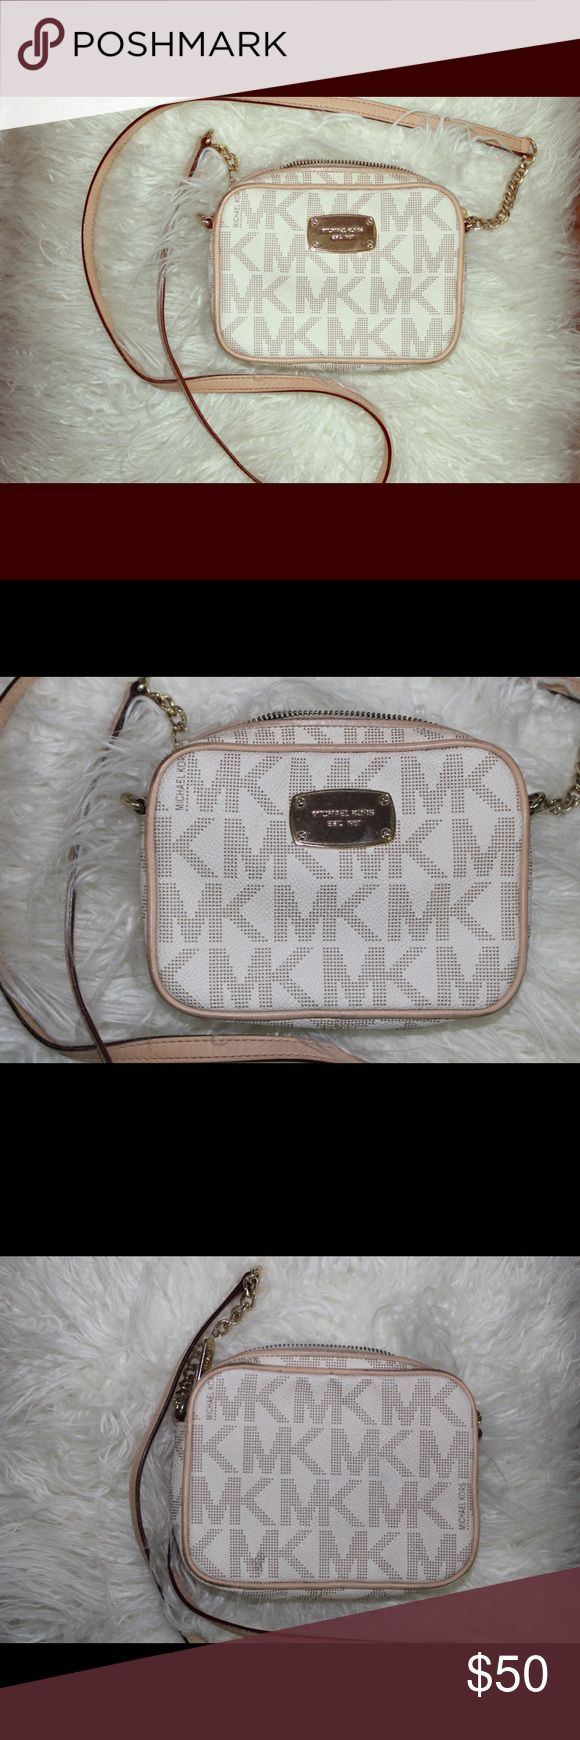 Micheal Kors crossbody White and cream Micheal Kors crossbody bag.. with gold accents. ***there is makeup stains inside of bag*** Michael Kors Bags Crossbody Bags